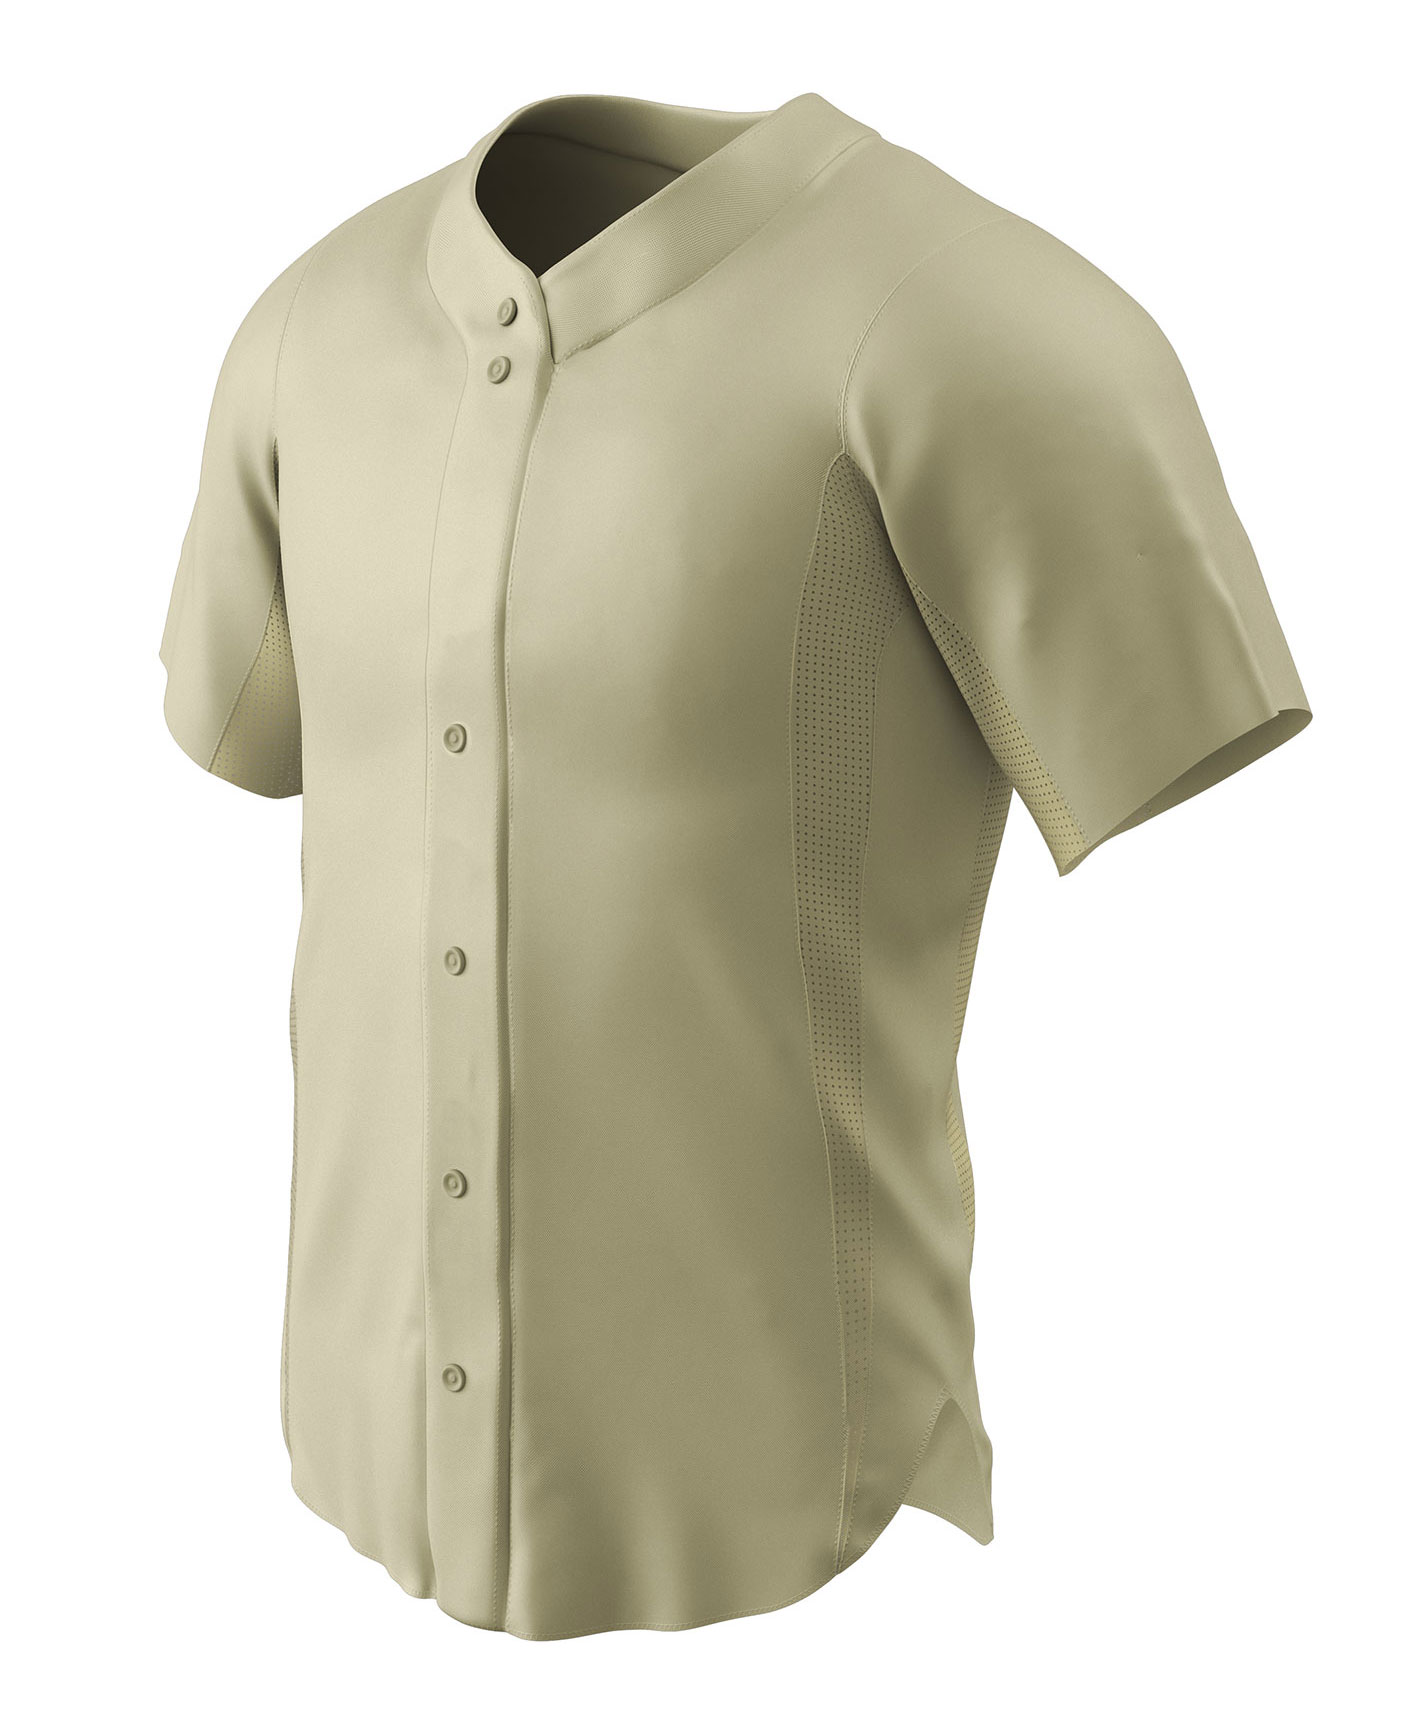 Youth Reliever Full Button Baseball Jersey